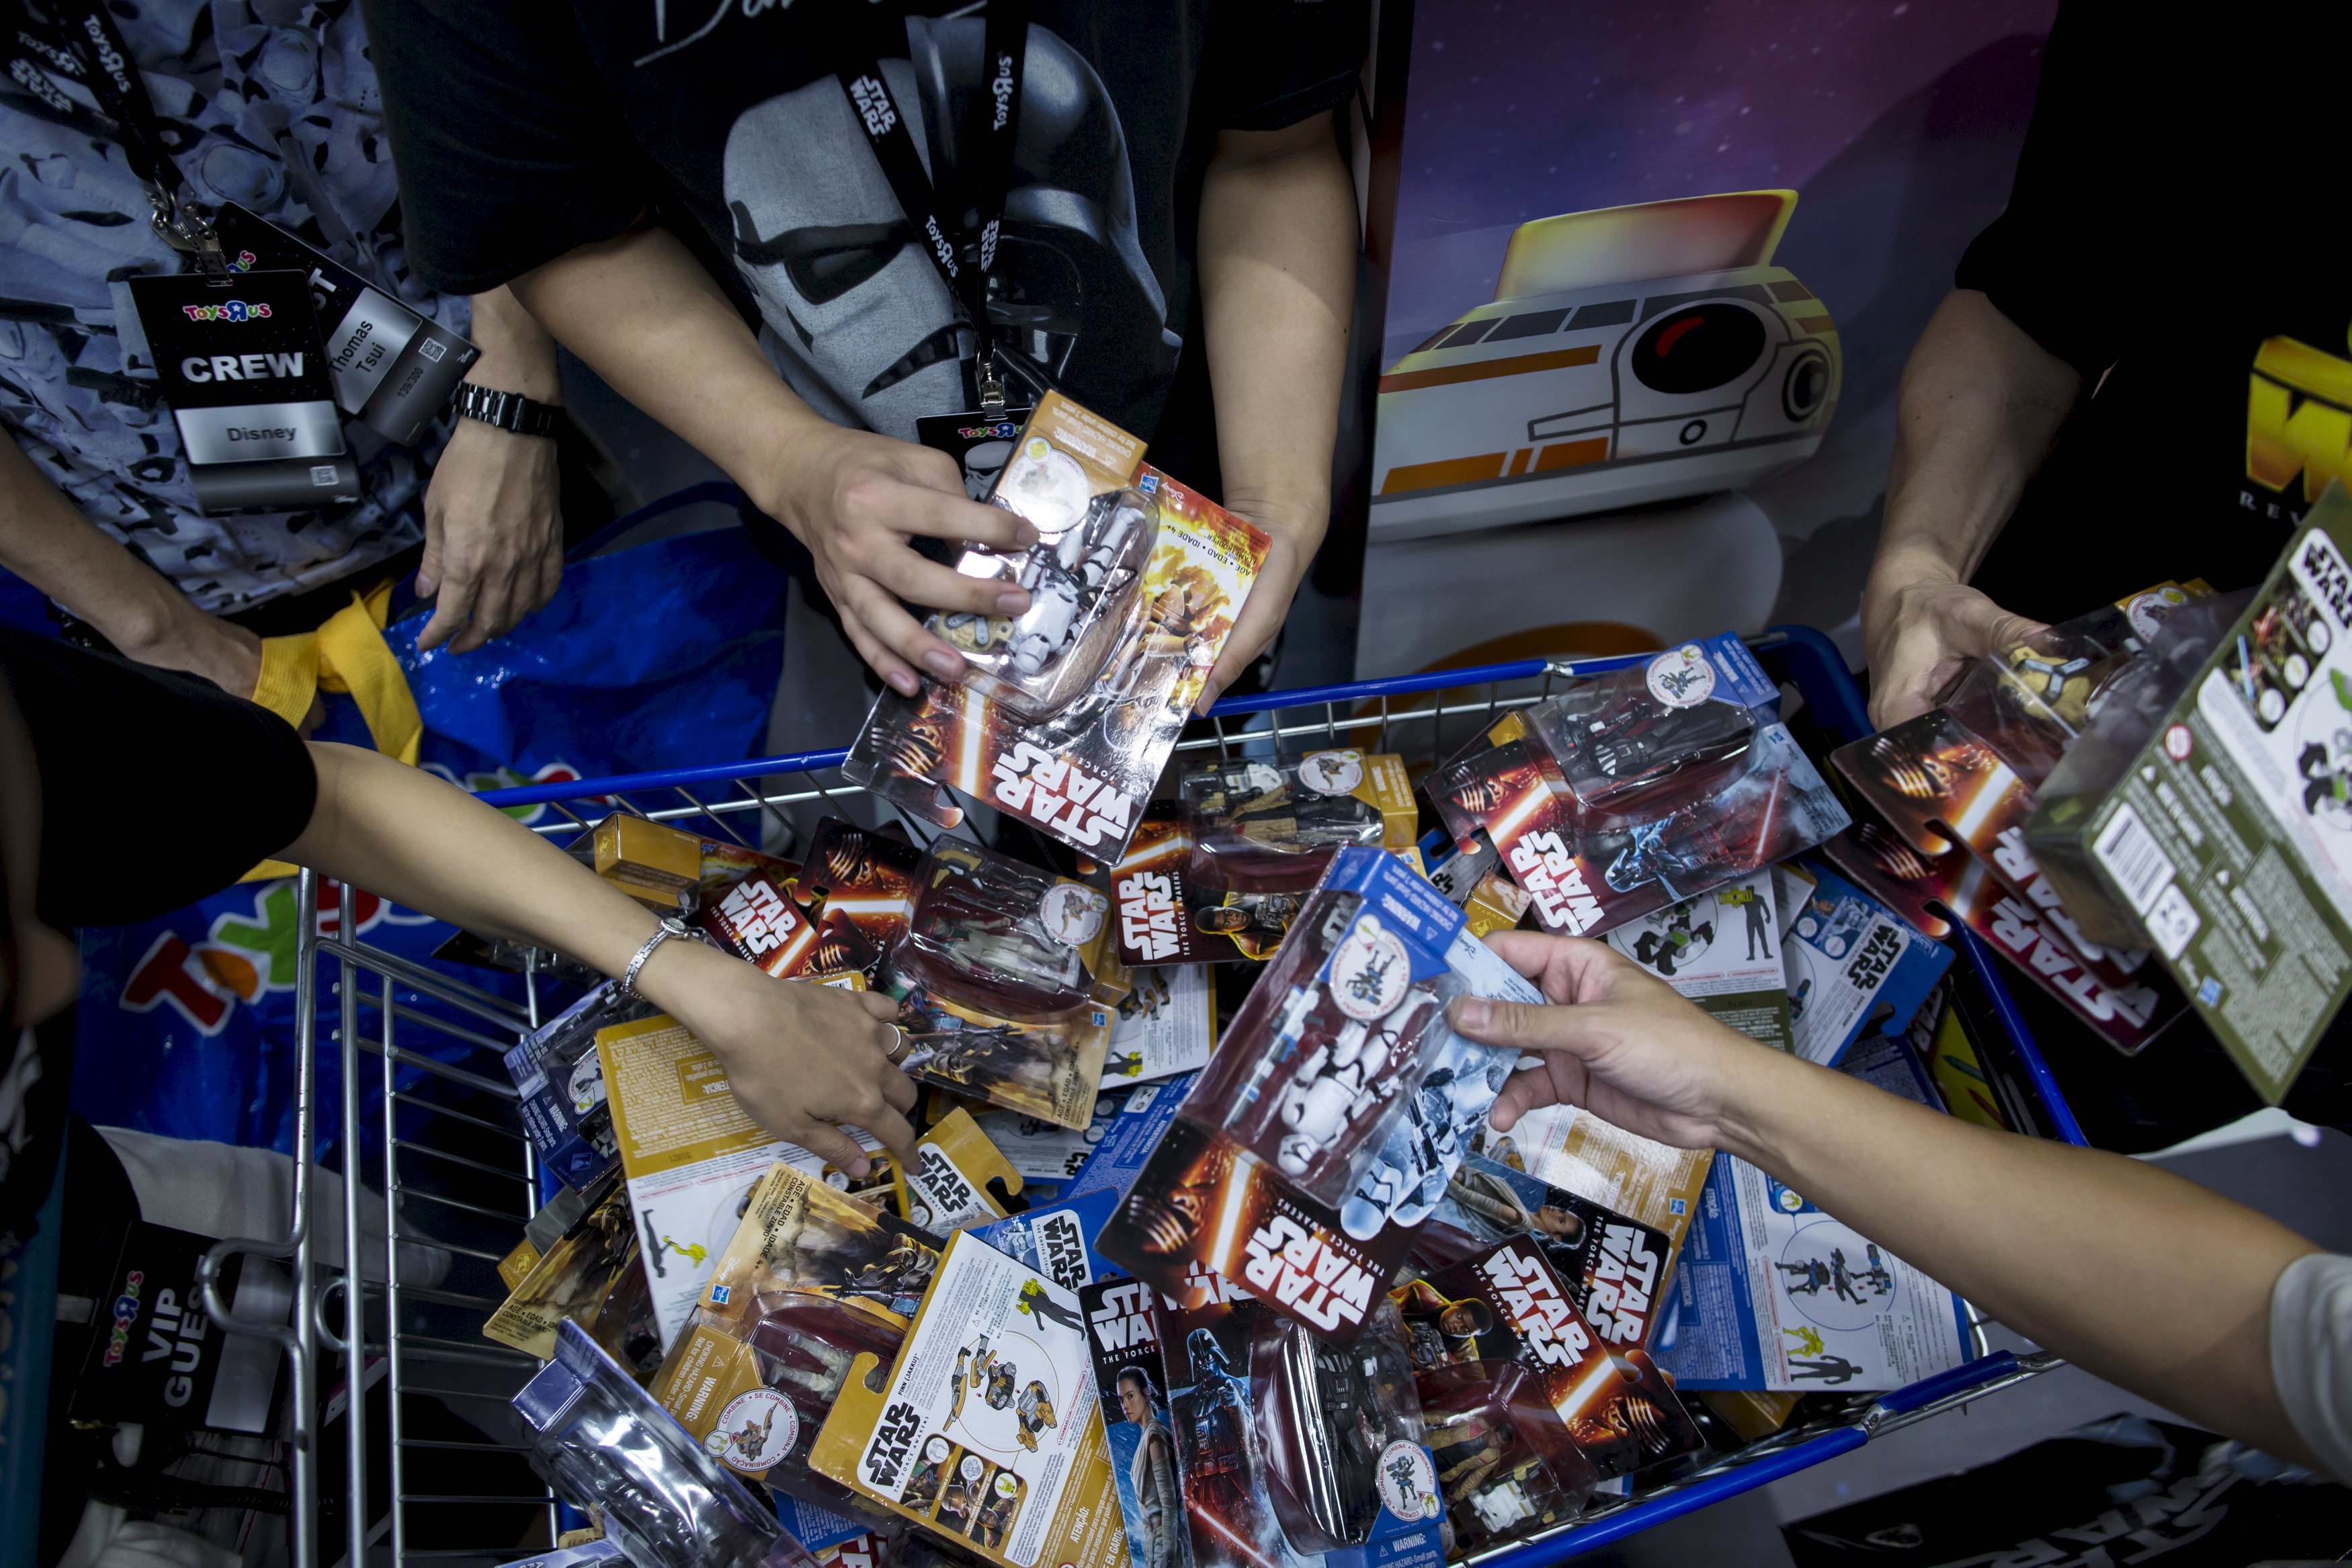 """Customers pick new toys from the upcoming film """"Star Wars: The Force Awakens"""" on """"Force Friday"""" in Hong Kong, China, in this September 4, 2015 file photo. REUTERS/Tyrone Siu/Files"""